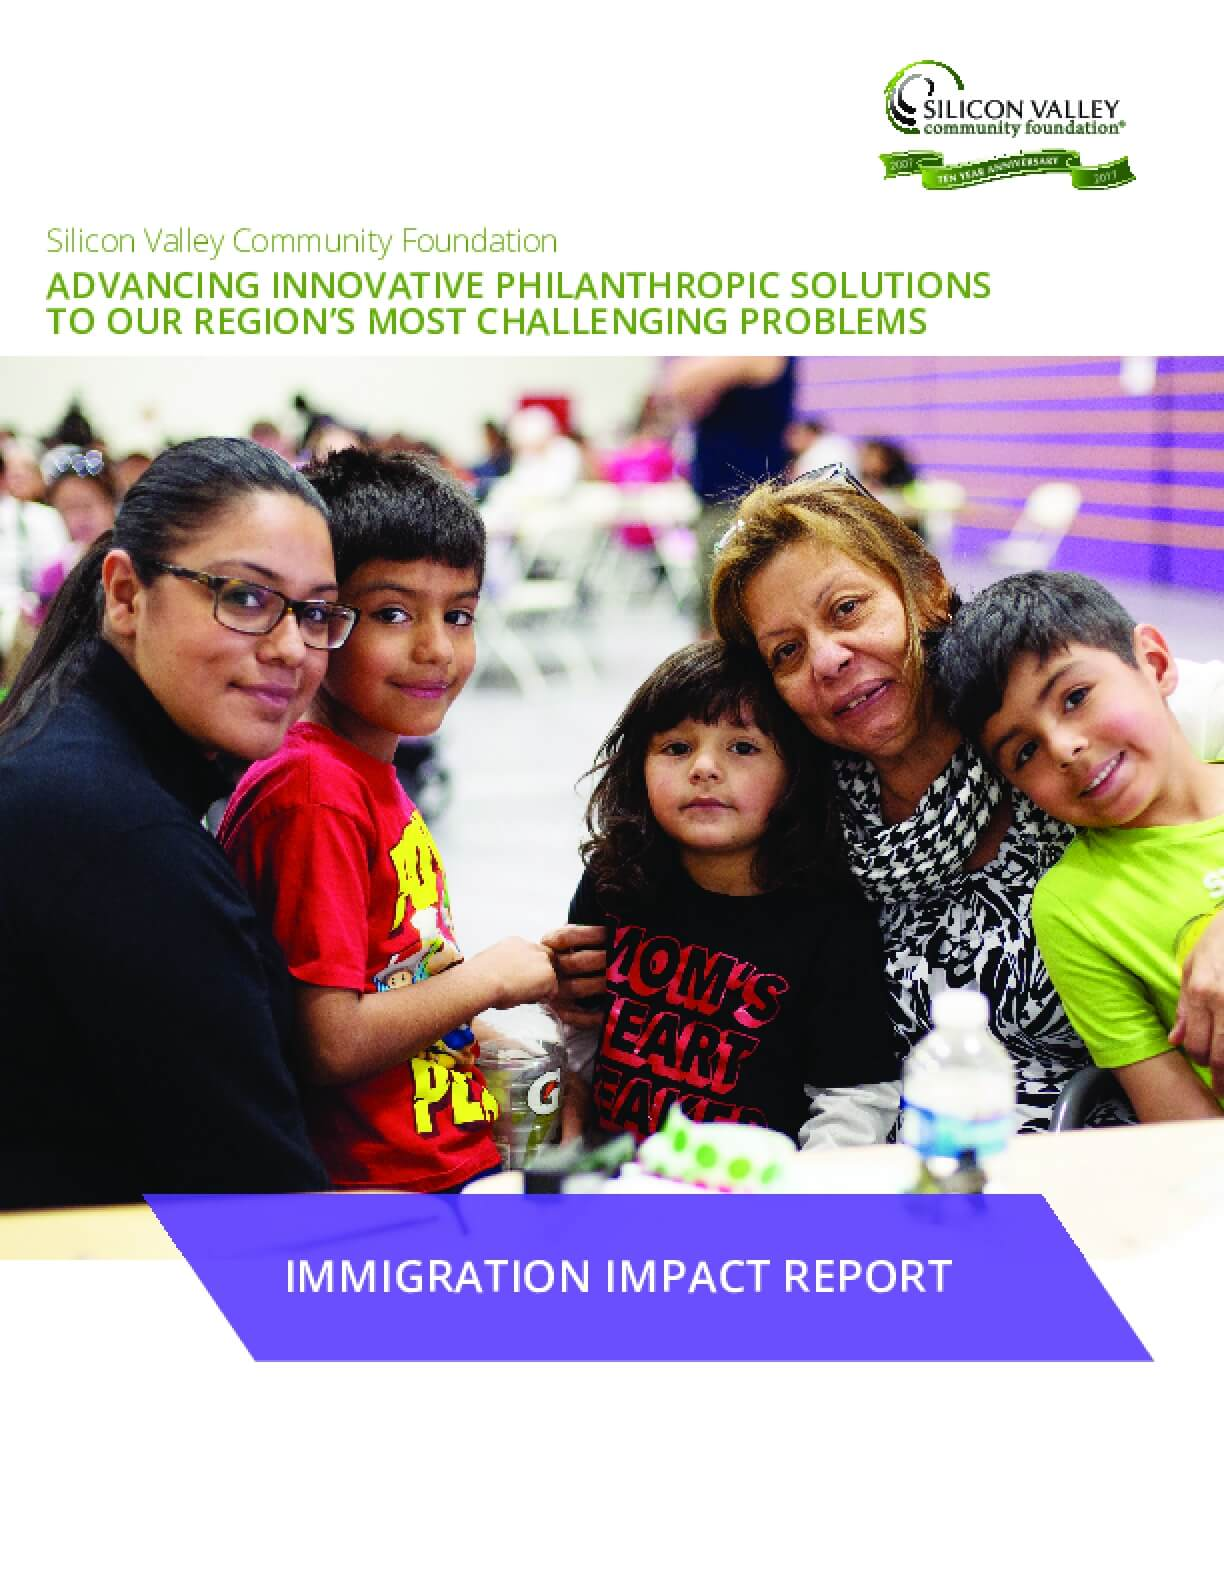 Immigration Impact Report: Advancing Innovative Philanthropic Solutions to Our Region's Most Challenging Problems